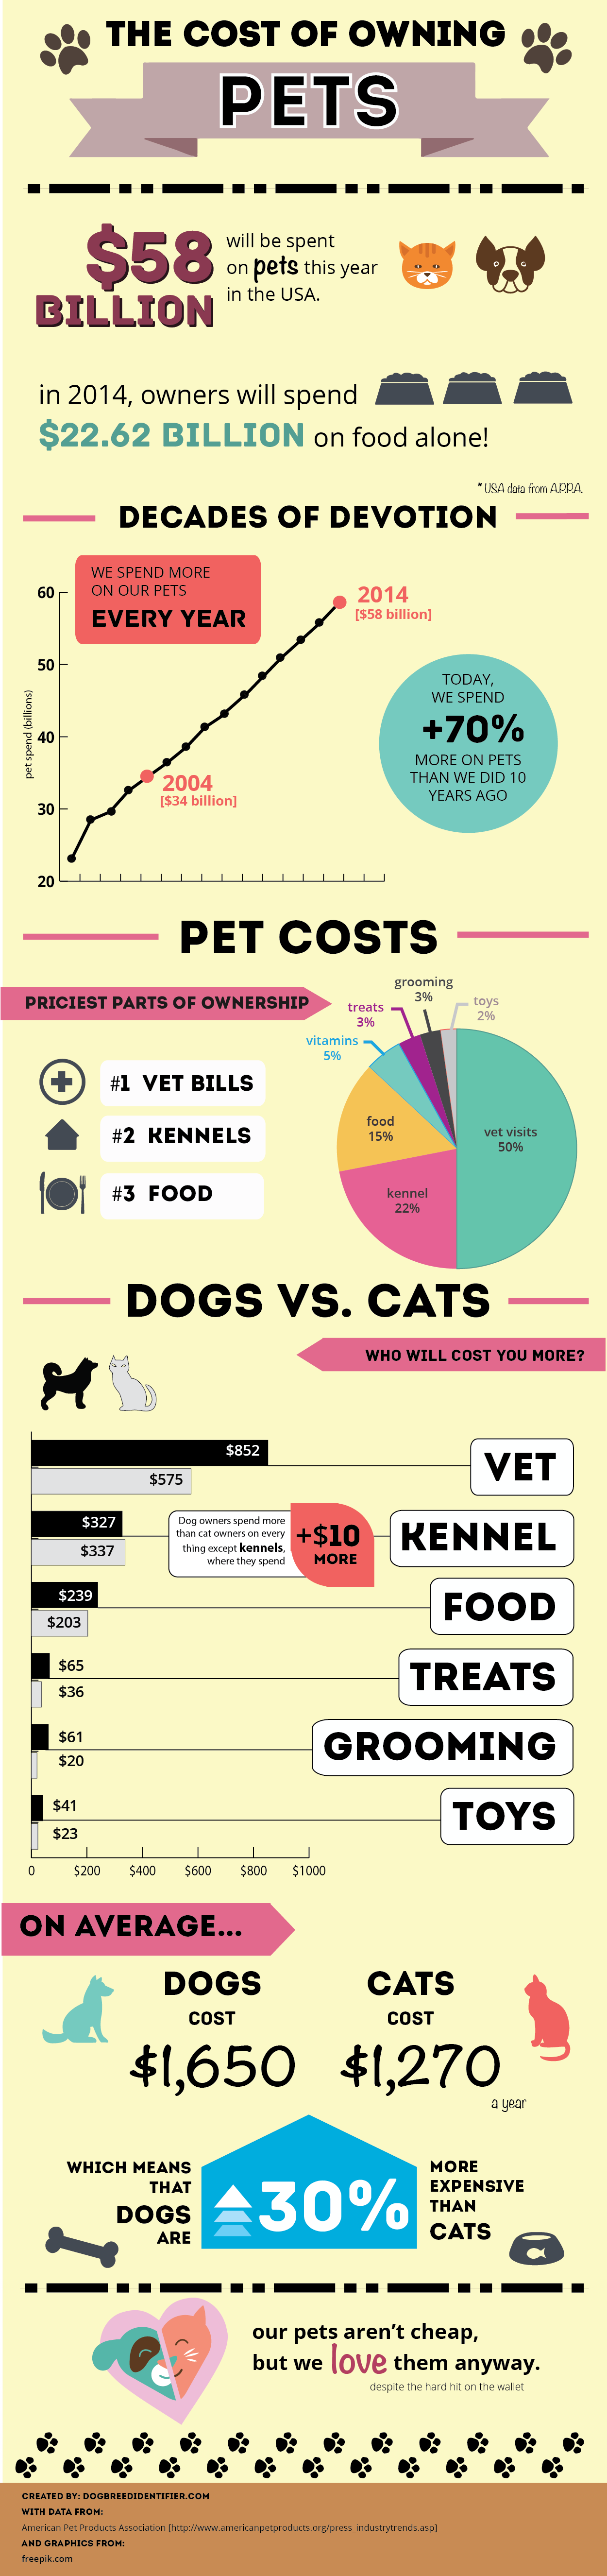 Cost of Pet Ownership